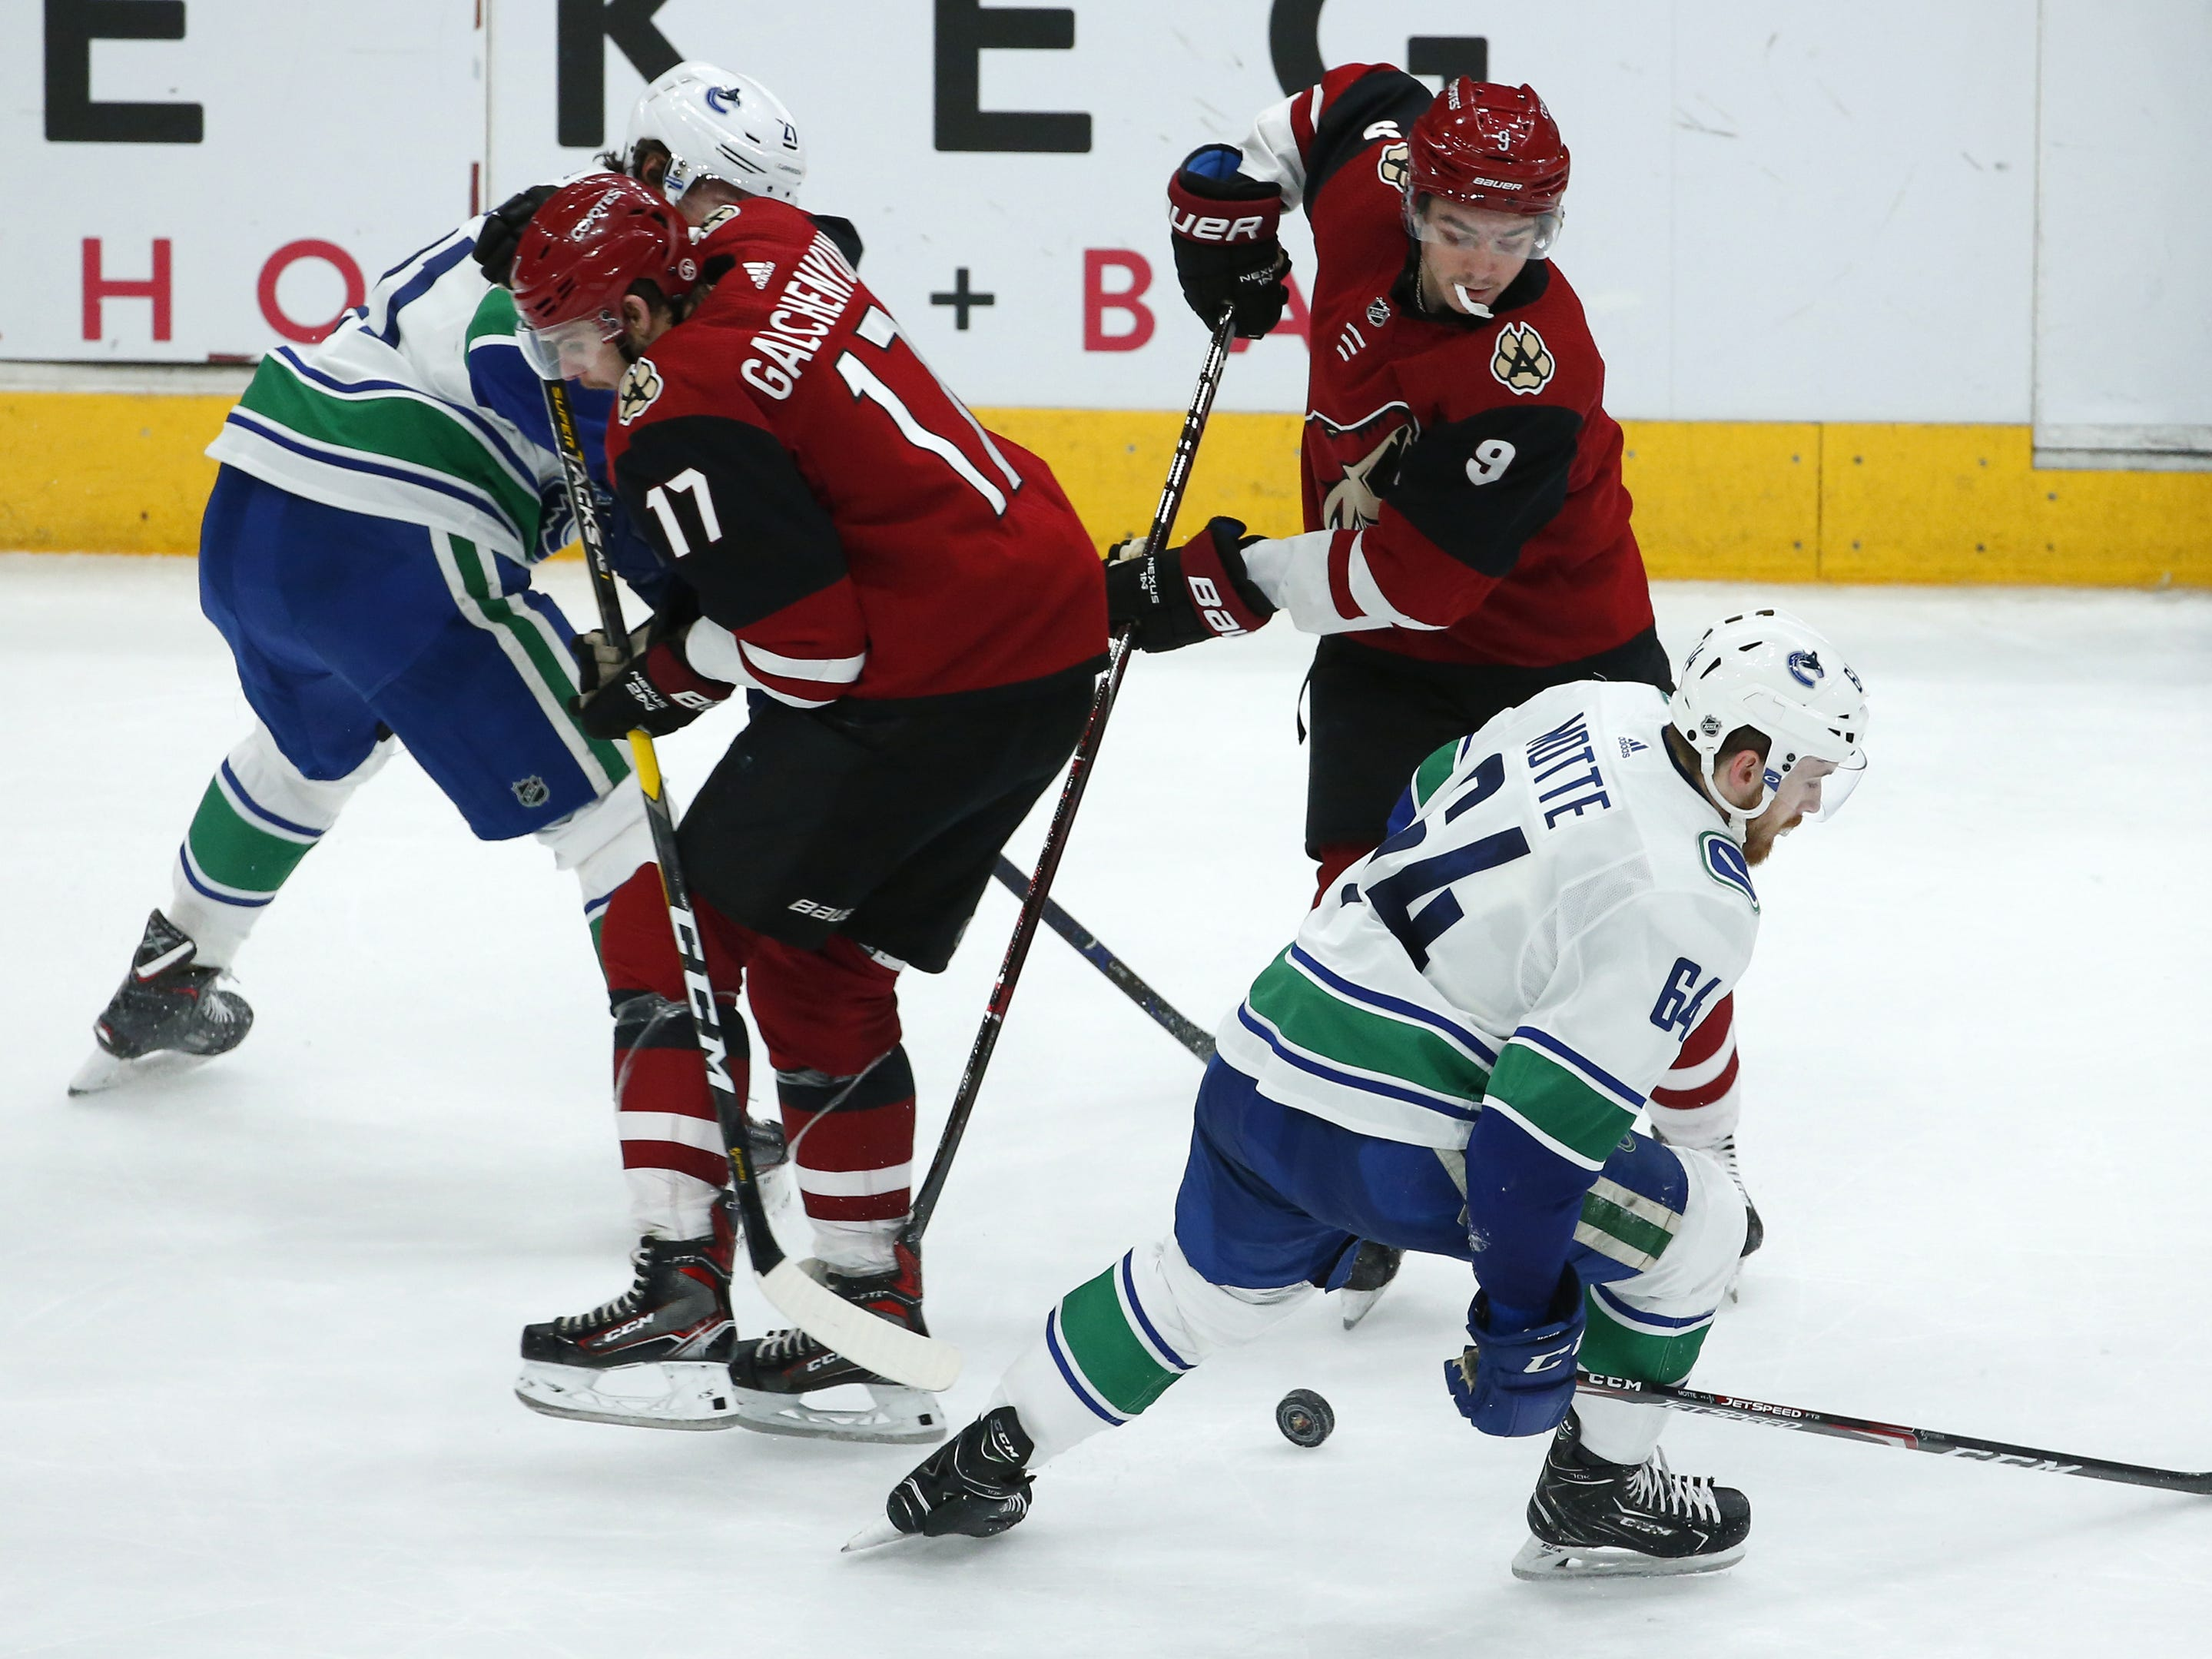 Arizona Coyotes center Clayton Keller (9) battles Vancouver Canucks center Tyler Motte (64) for the puck during a NHL game at Gila River Arena in Glendale on February 28.